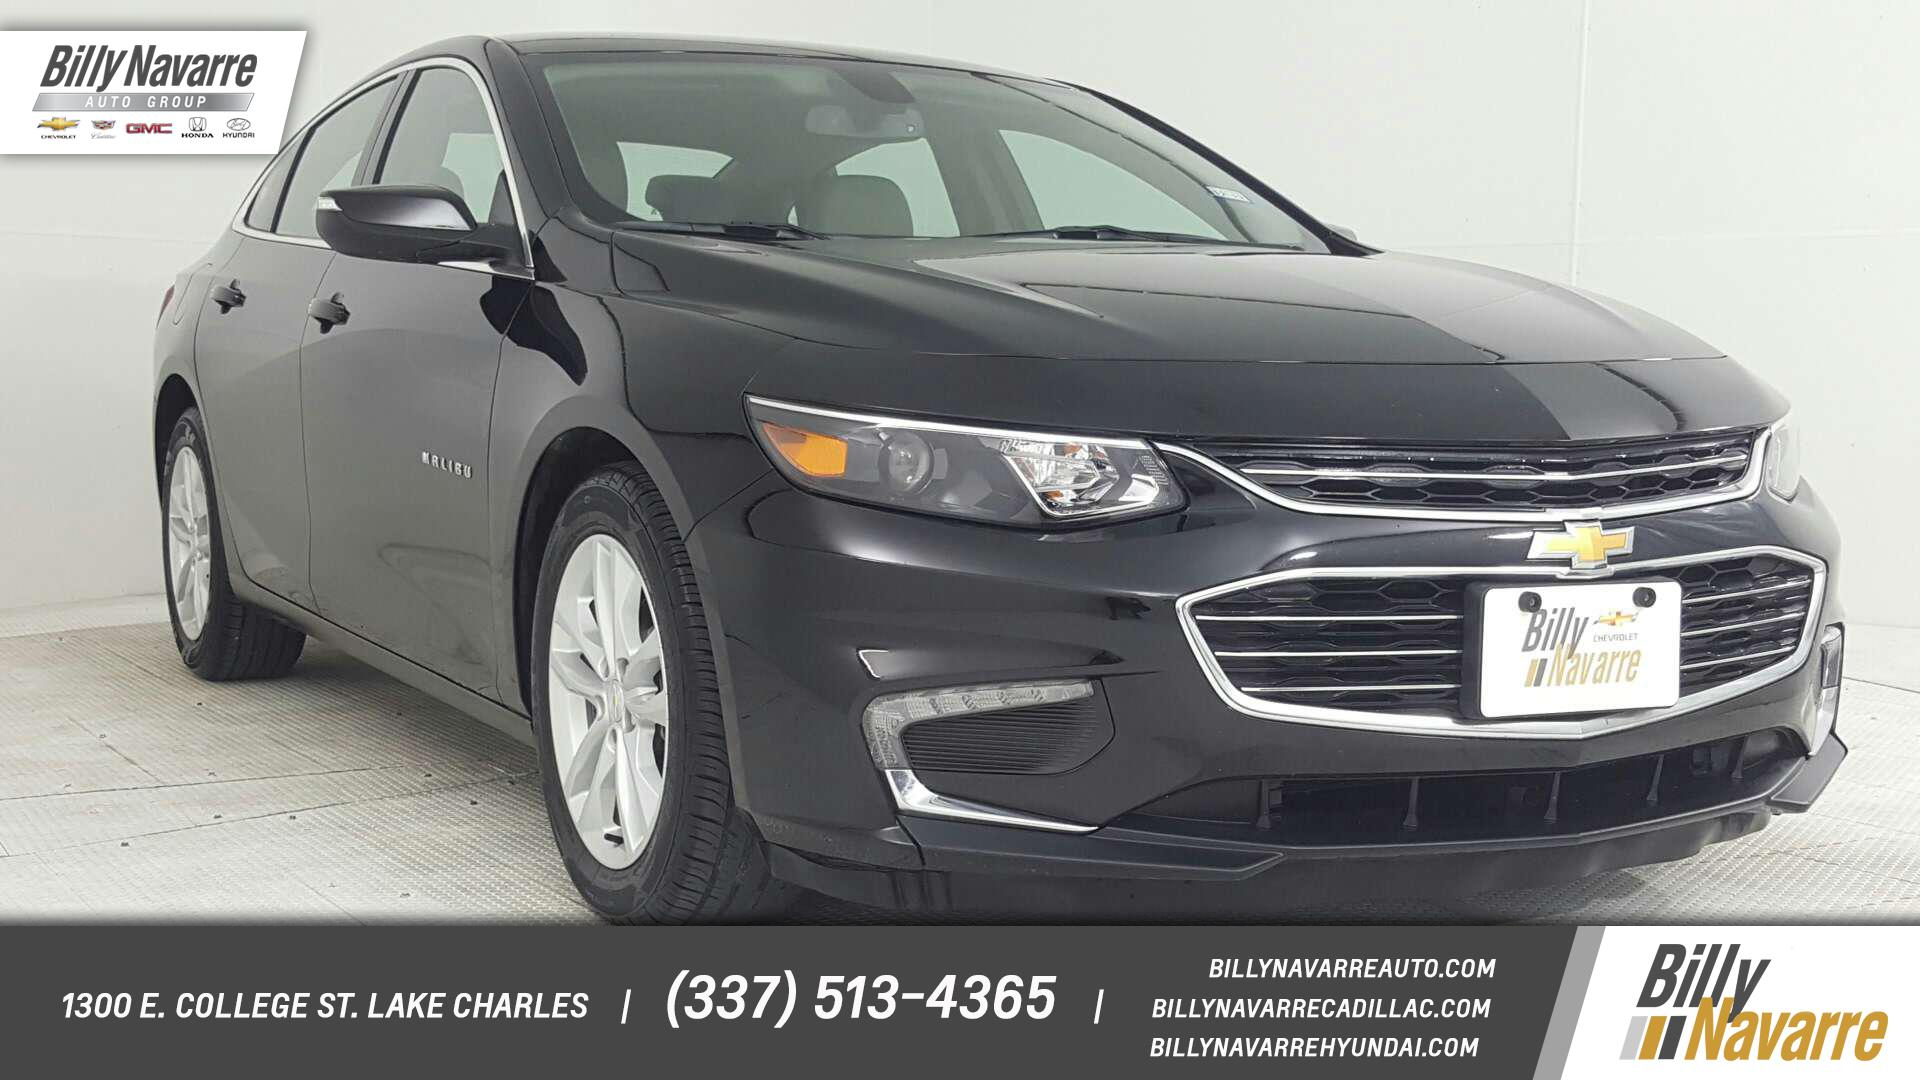 Lake Charles Used Vehicles For Sale